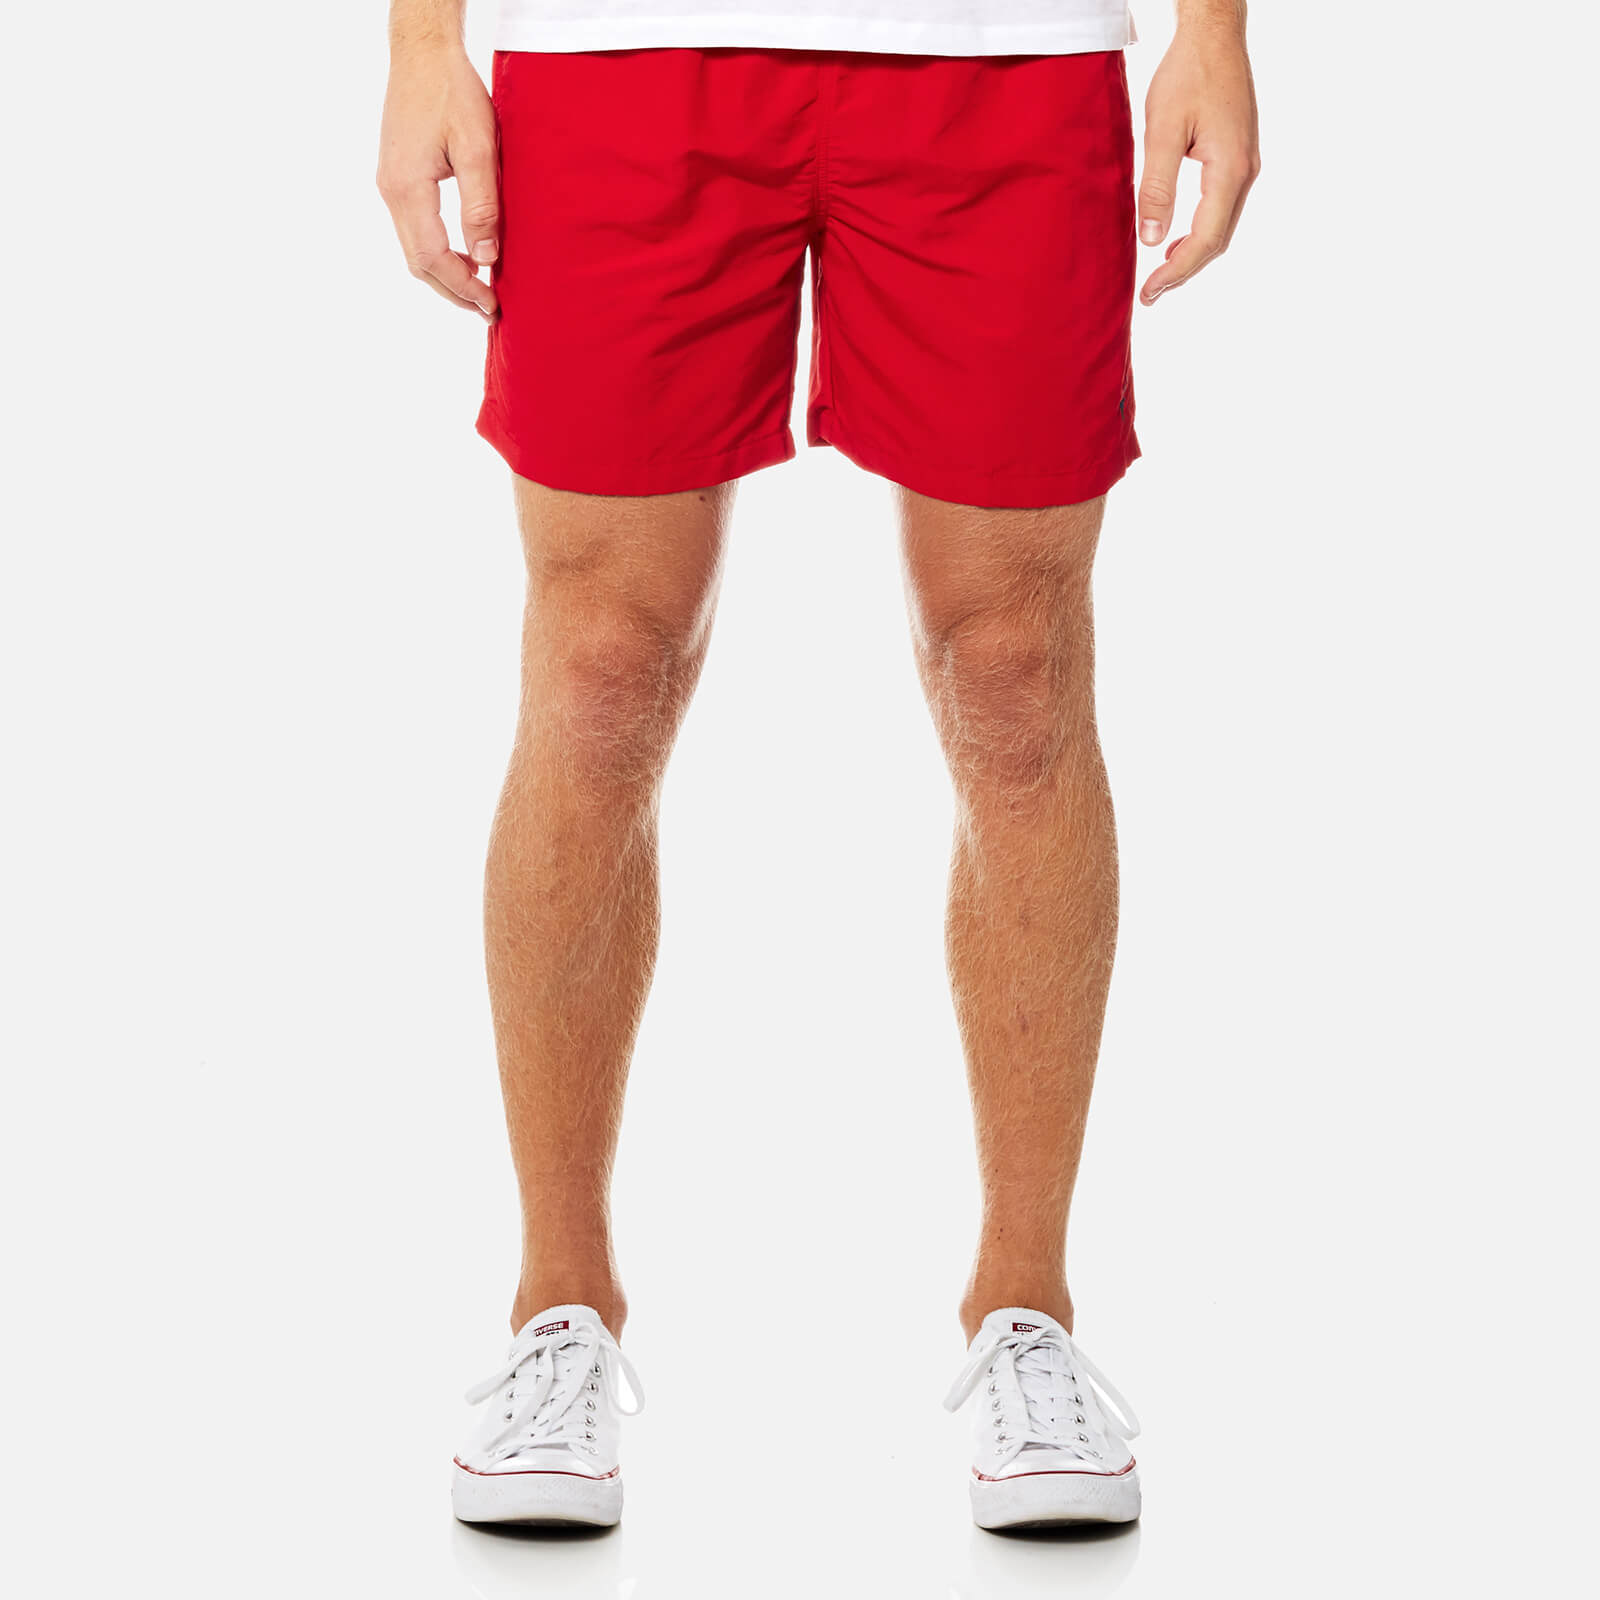 18f814a462 Polo Ralph Lauren Men's Hawaiian Swim Shorts - Red - Free UK Delivery over  £50